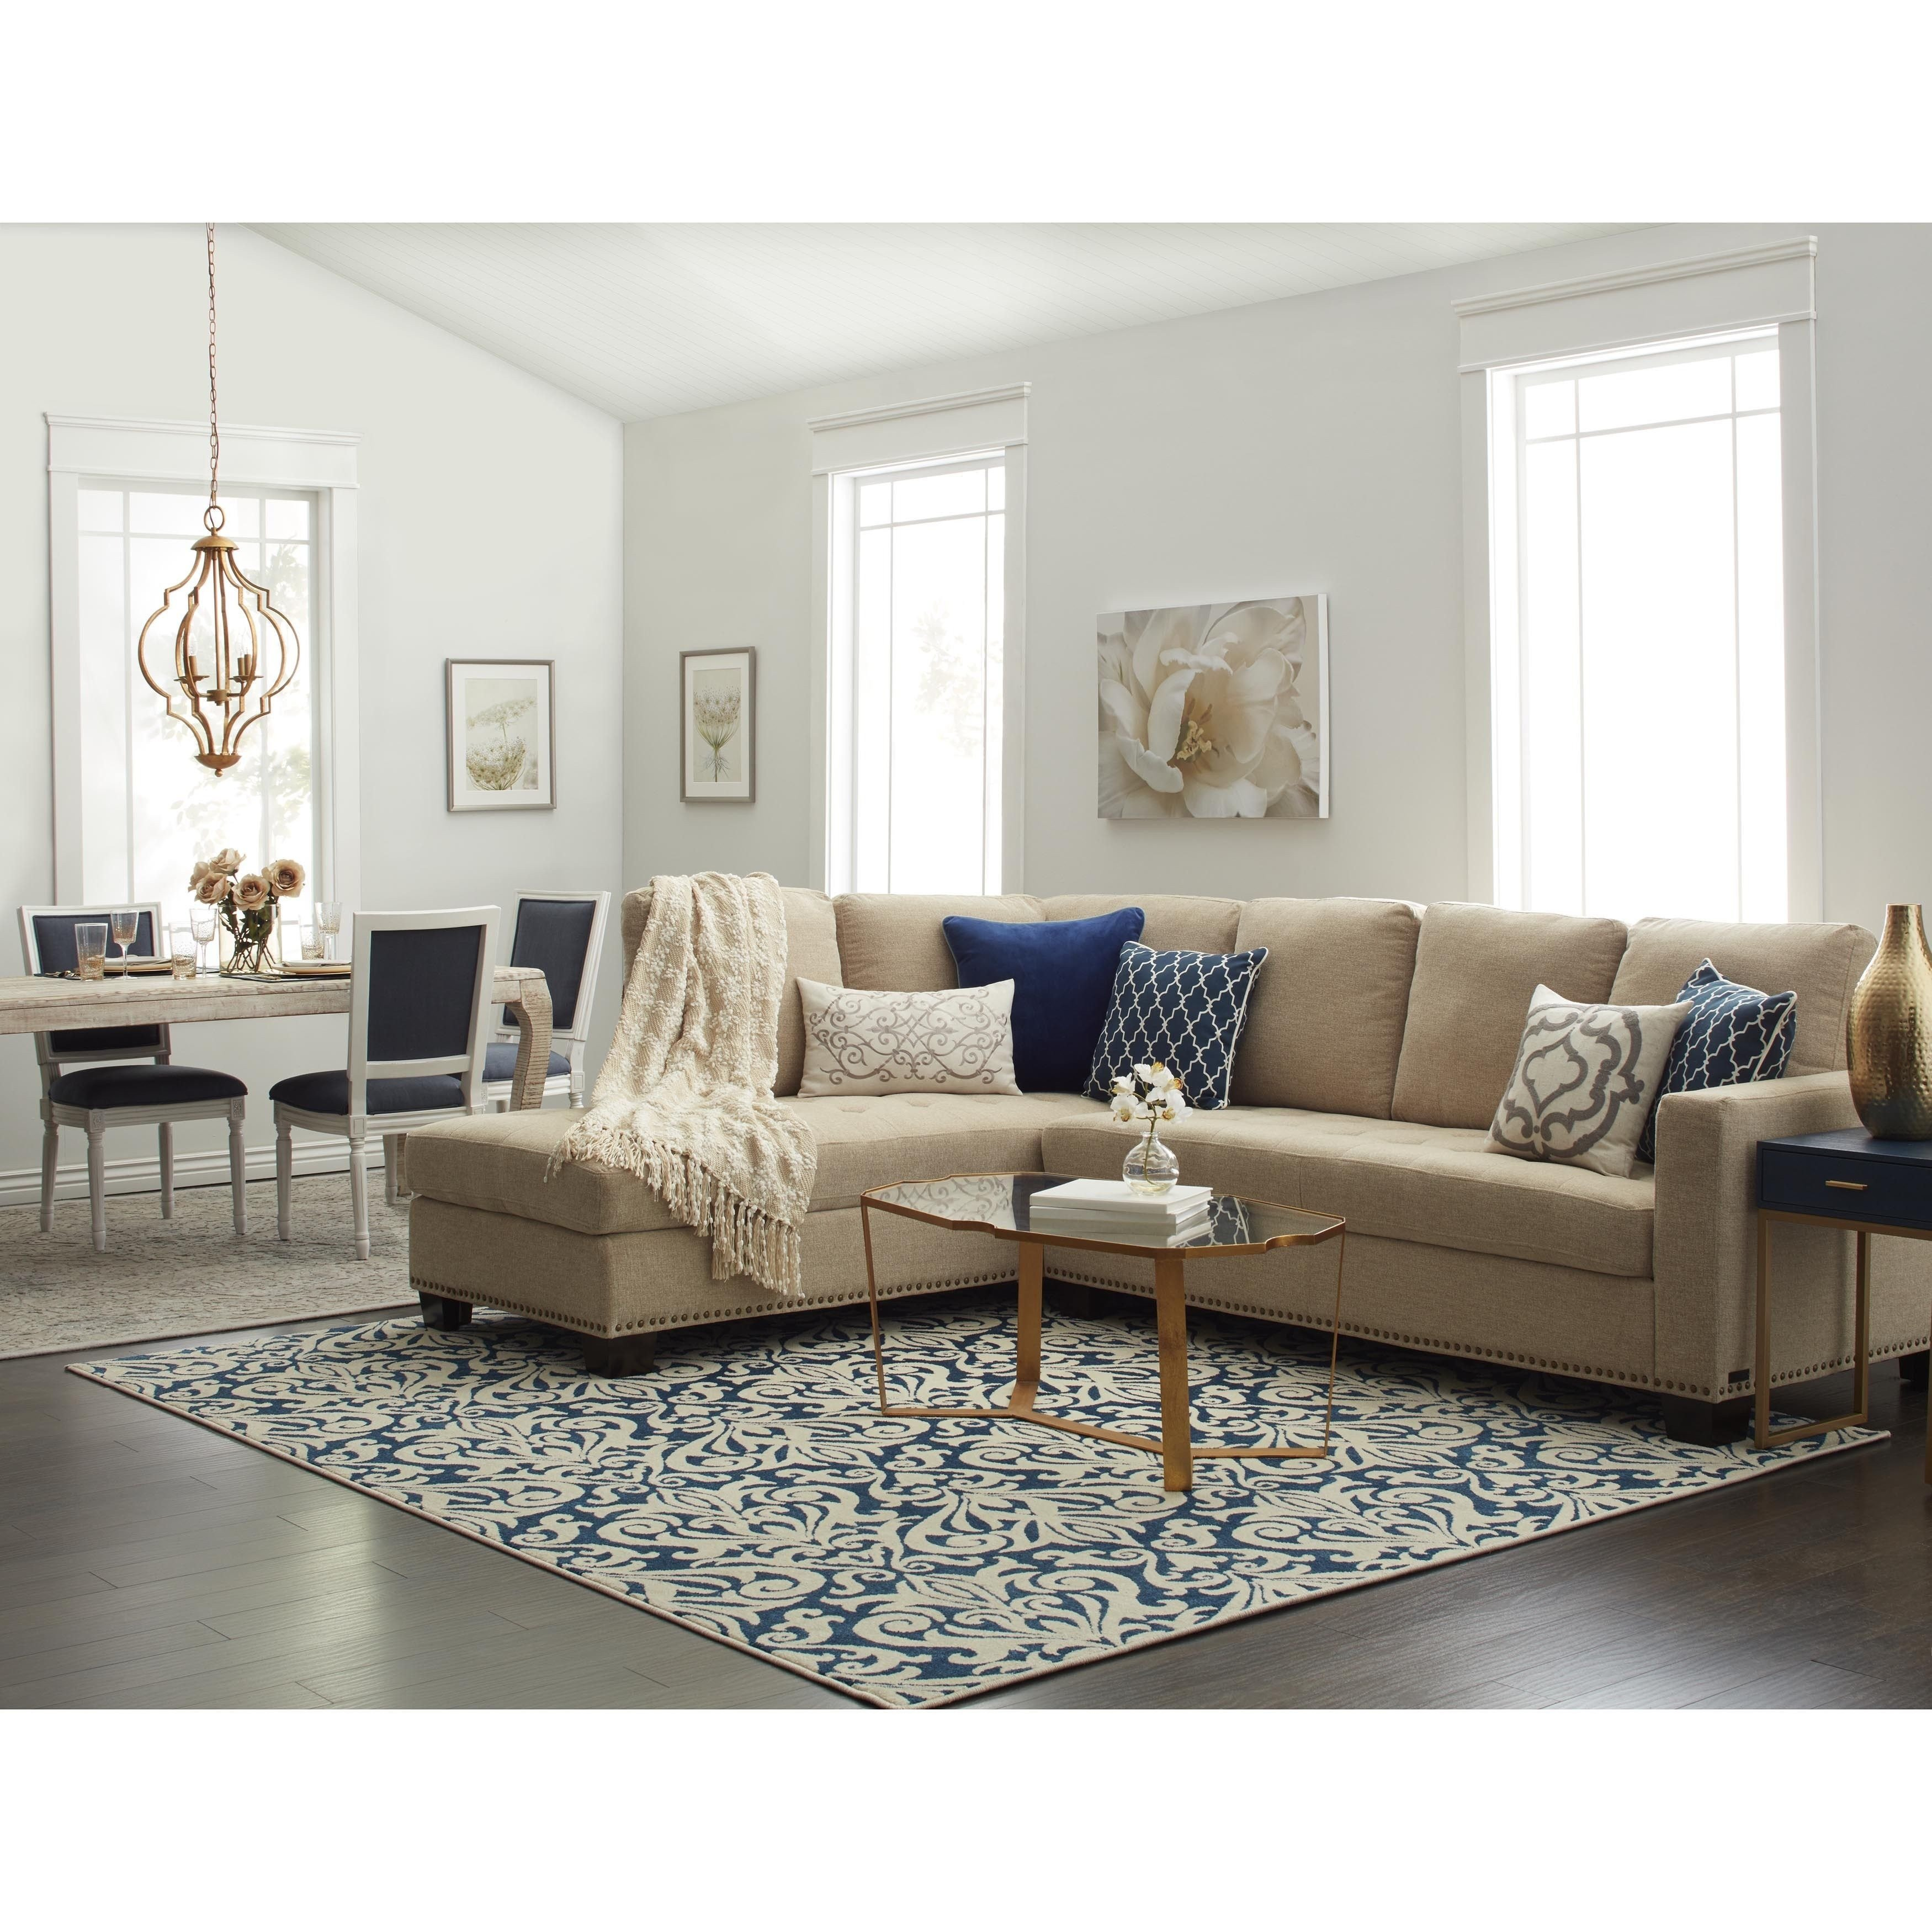 Living Room Decor with Sectional Inspirational Abbyson Claridge Fabric Sectional In 2019